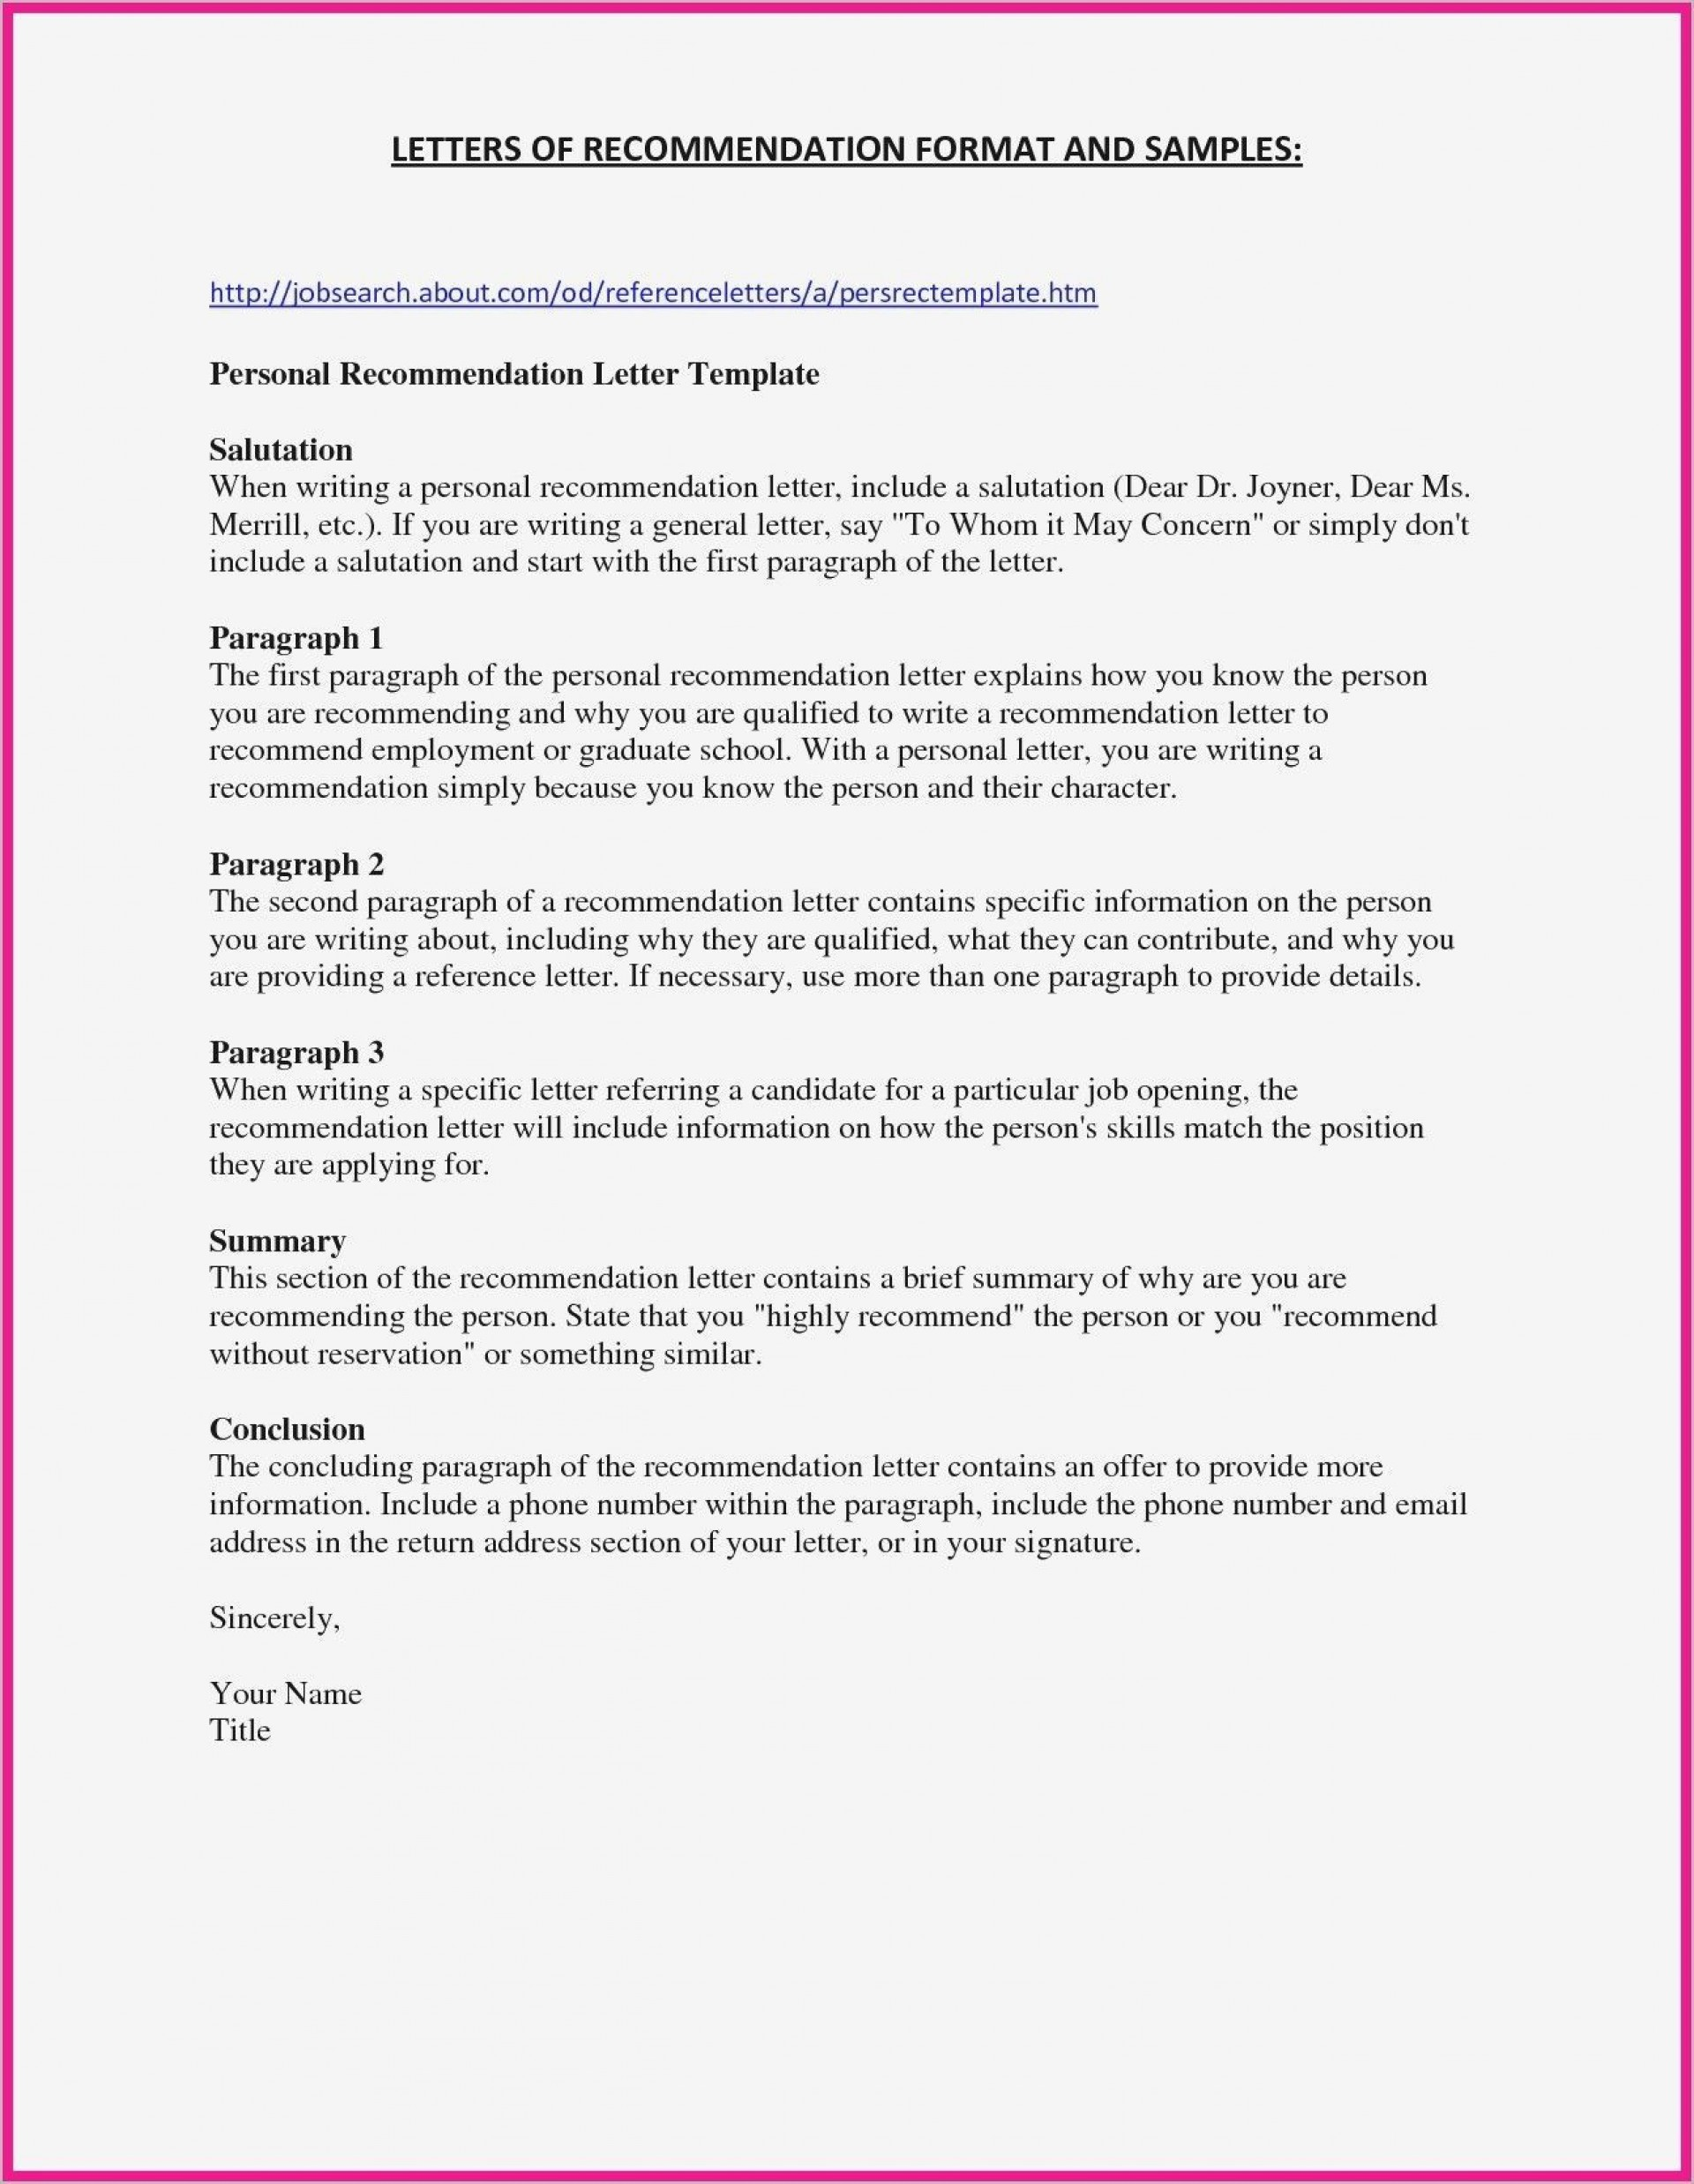 001 Remarkable Personal Letter Of Recommendation Template High Resolution  Sample Character Reference Assistant1920